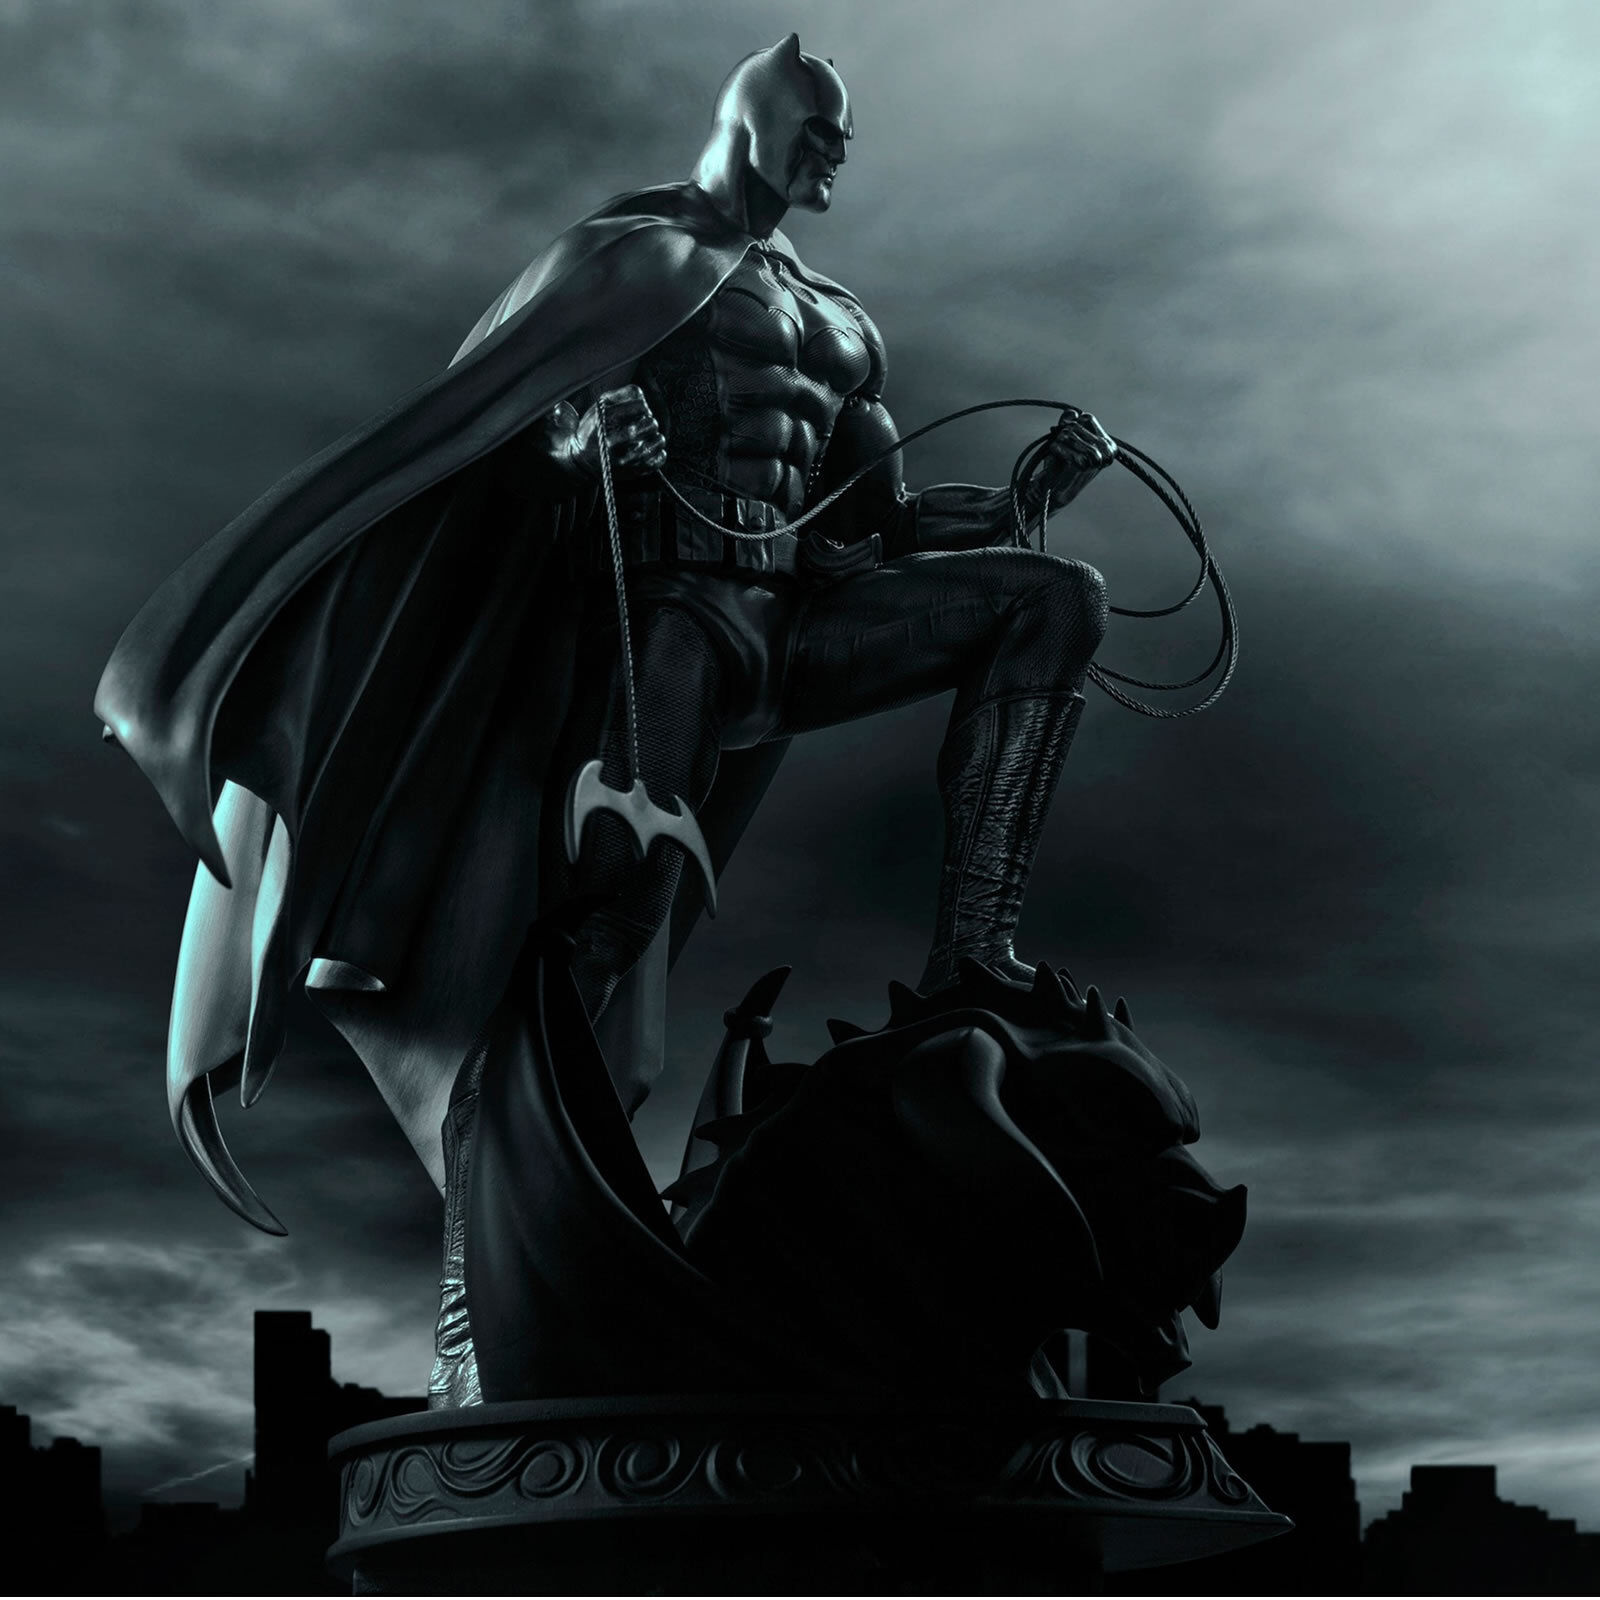 DC Comics Pewter Limited Edition Batman Figurine - Licensed by Royal Selangor